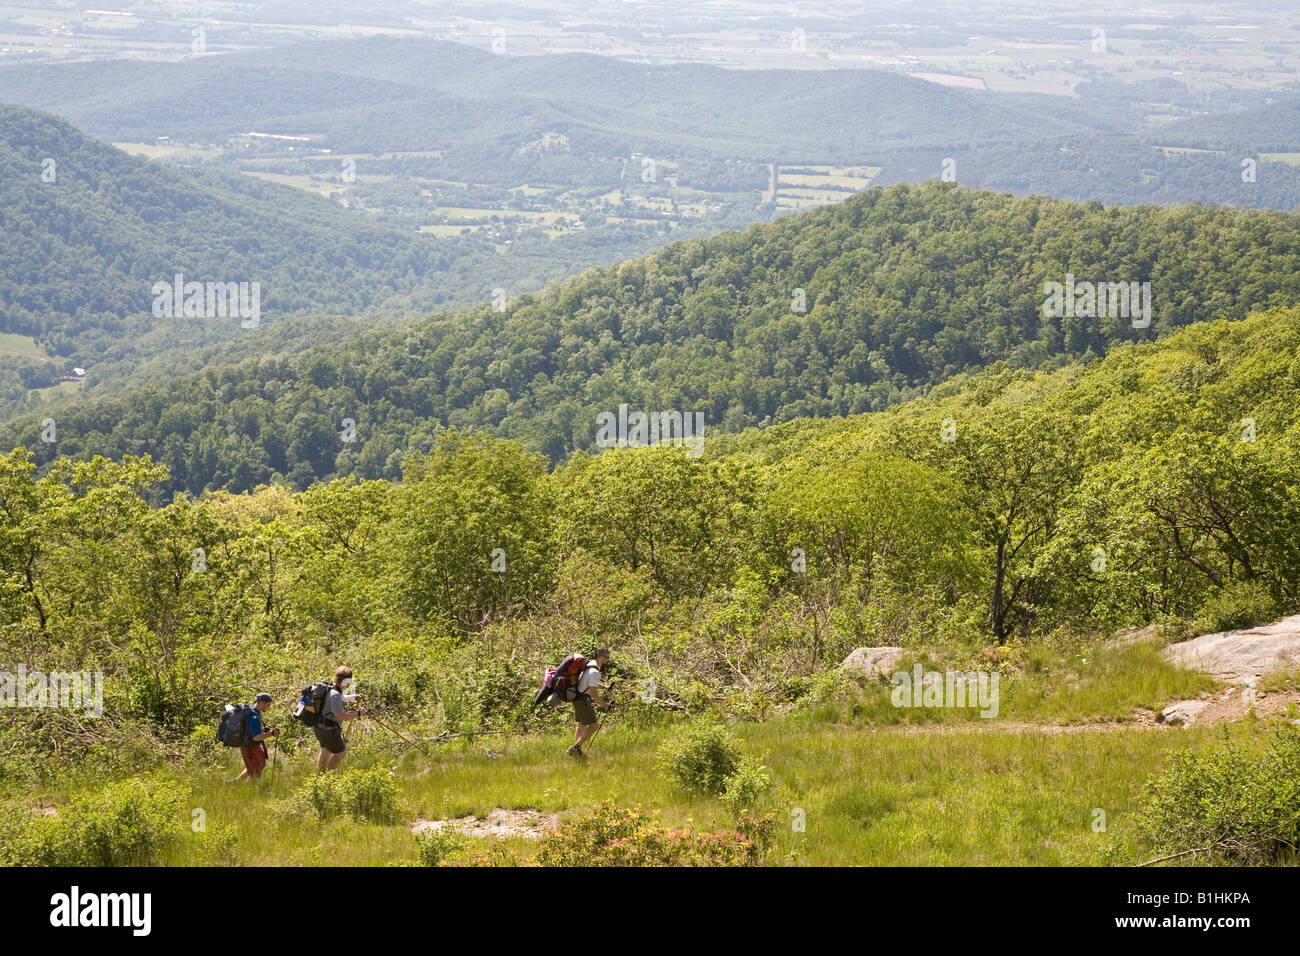 Backpackers on Appalachian Trail - Stock Image